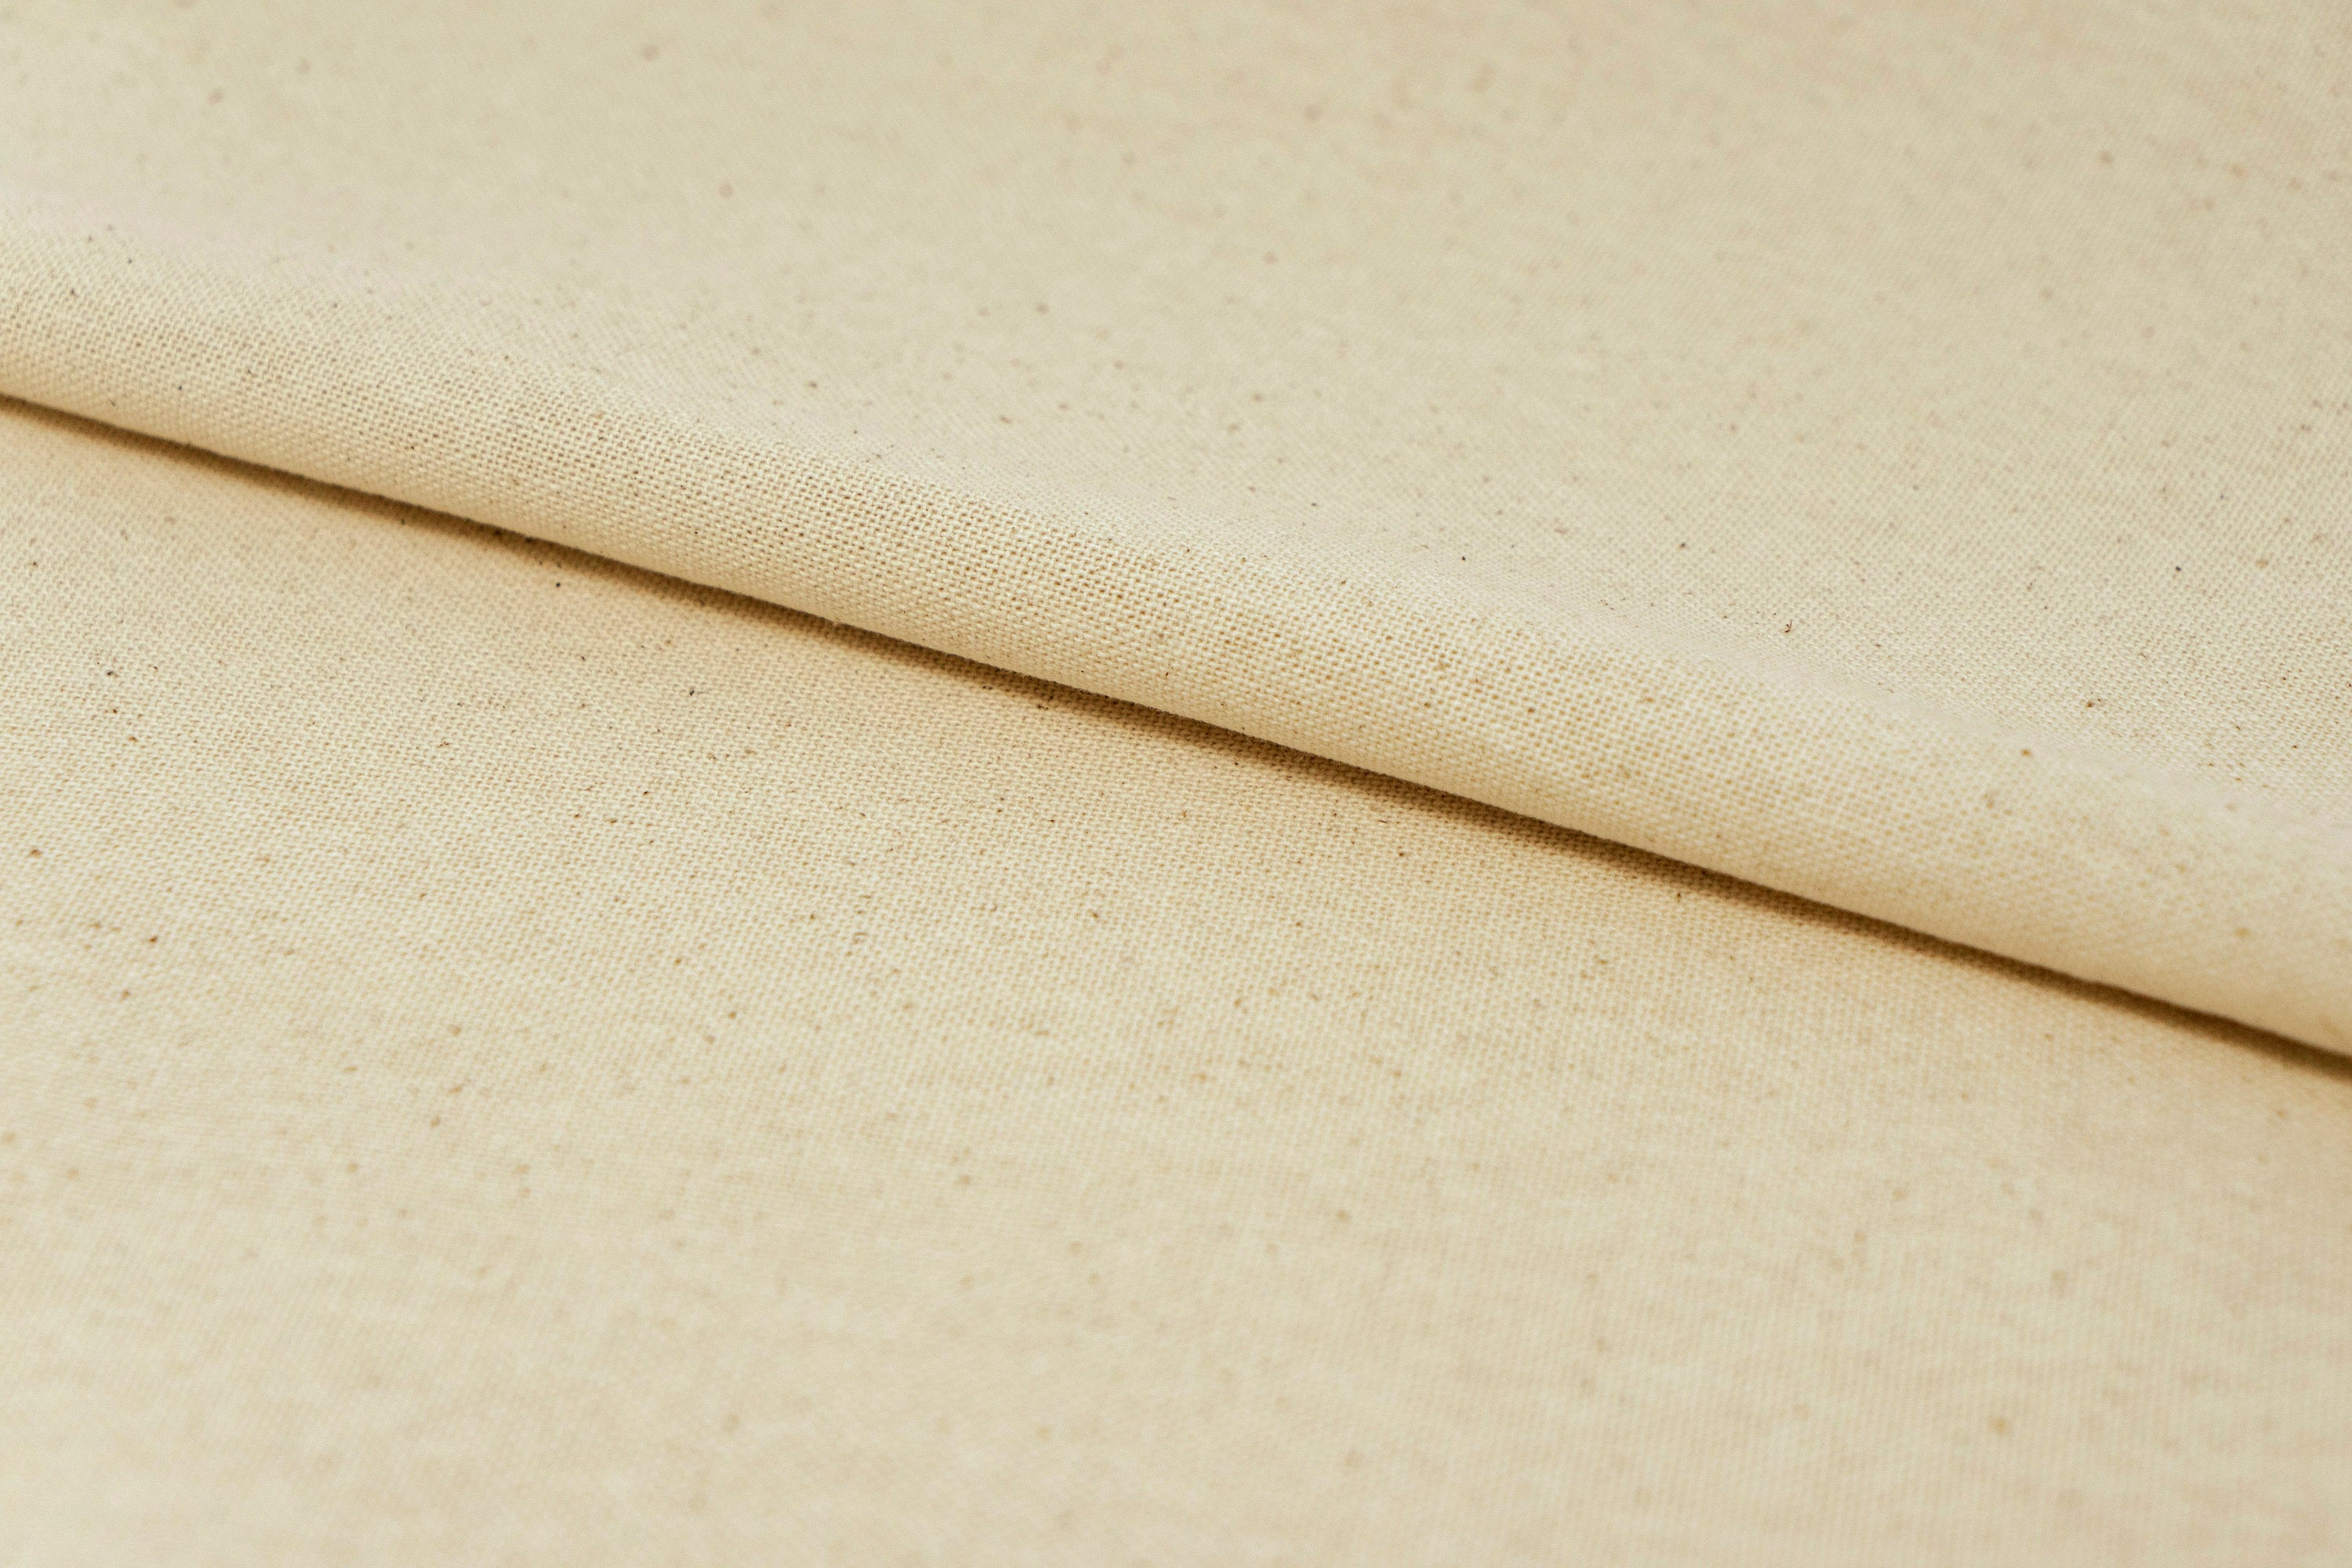 "100% Cotton 44/45"" Wide Natural Osnaburg-Permanent Press Muslin. Sold by Yard, Unbleached, Off-White"